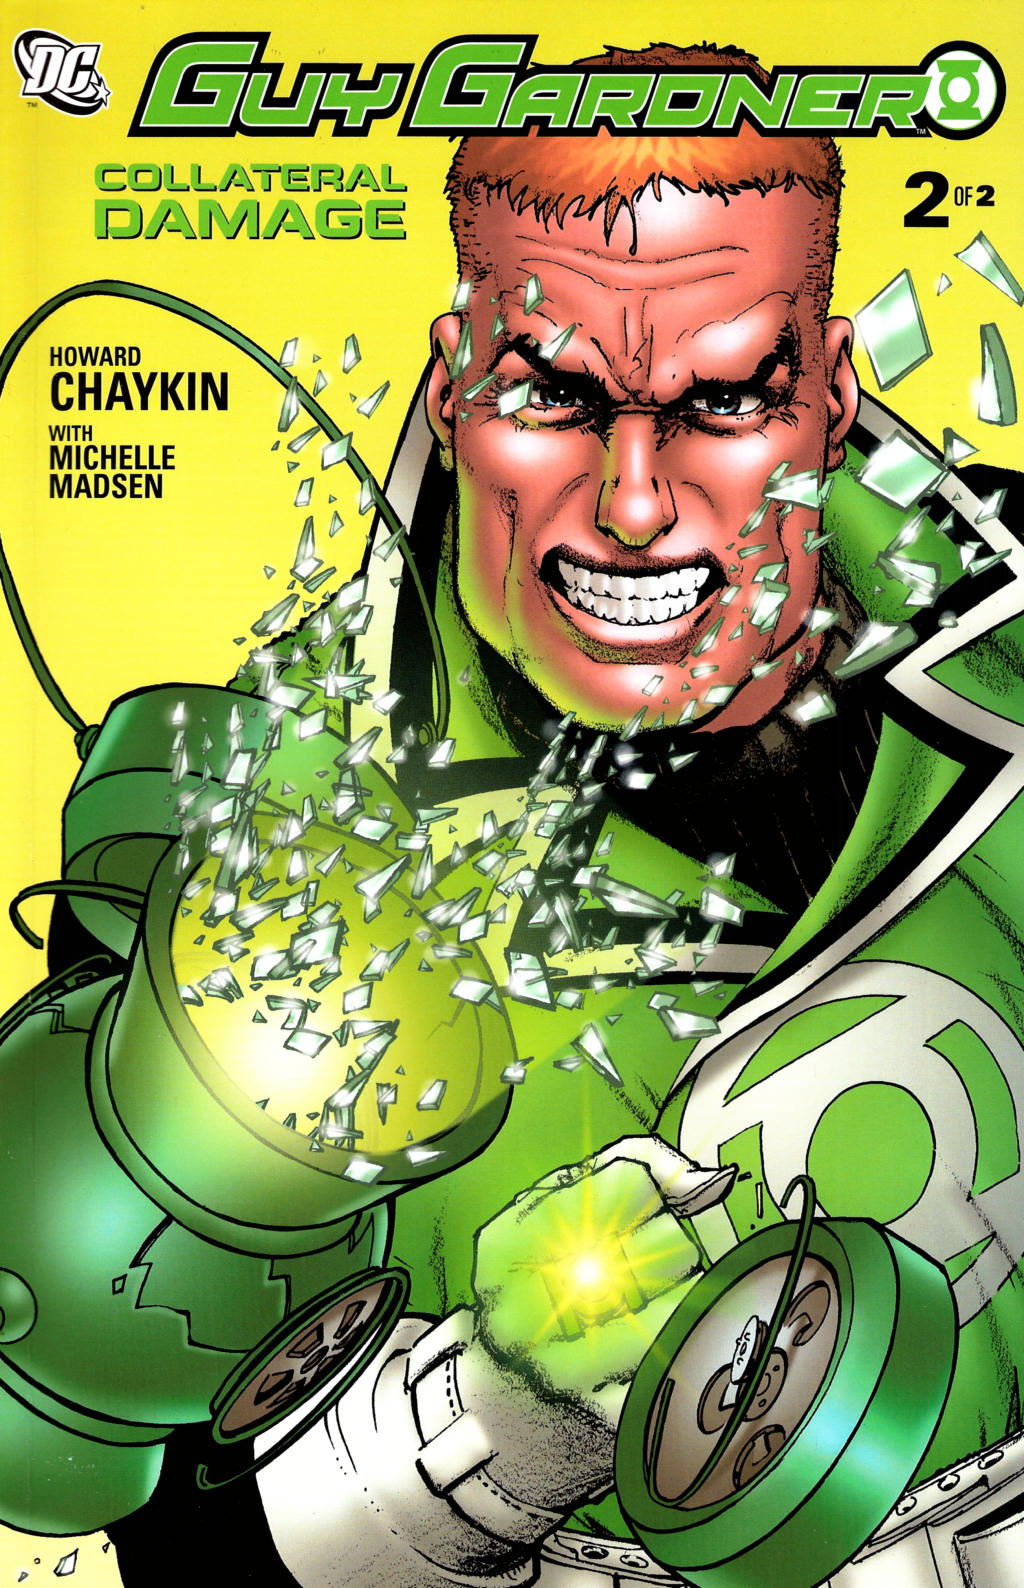 Read online Guy Gardner: Collateral Damage comic -  Issue #2 - 1